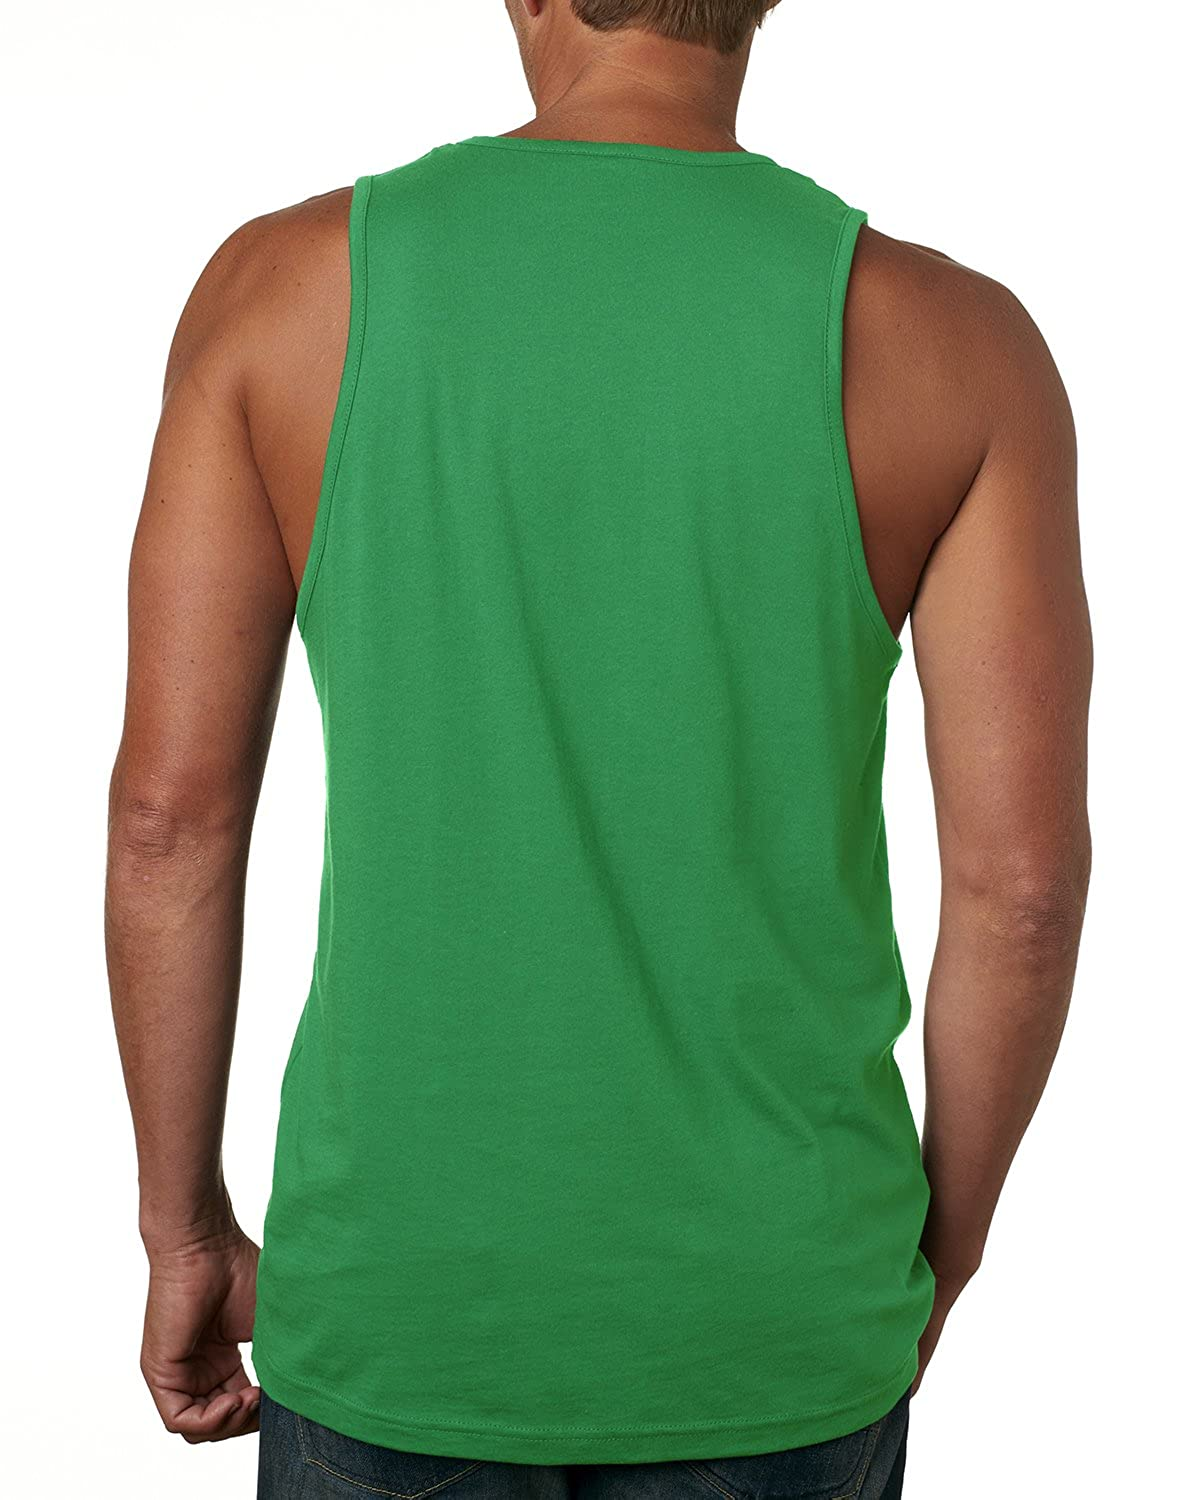 942b913751bb63 Next Level Men s Jersey Solid Tank Top 3633 at Amazon Men s Clothing store